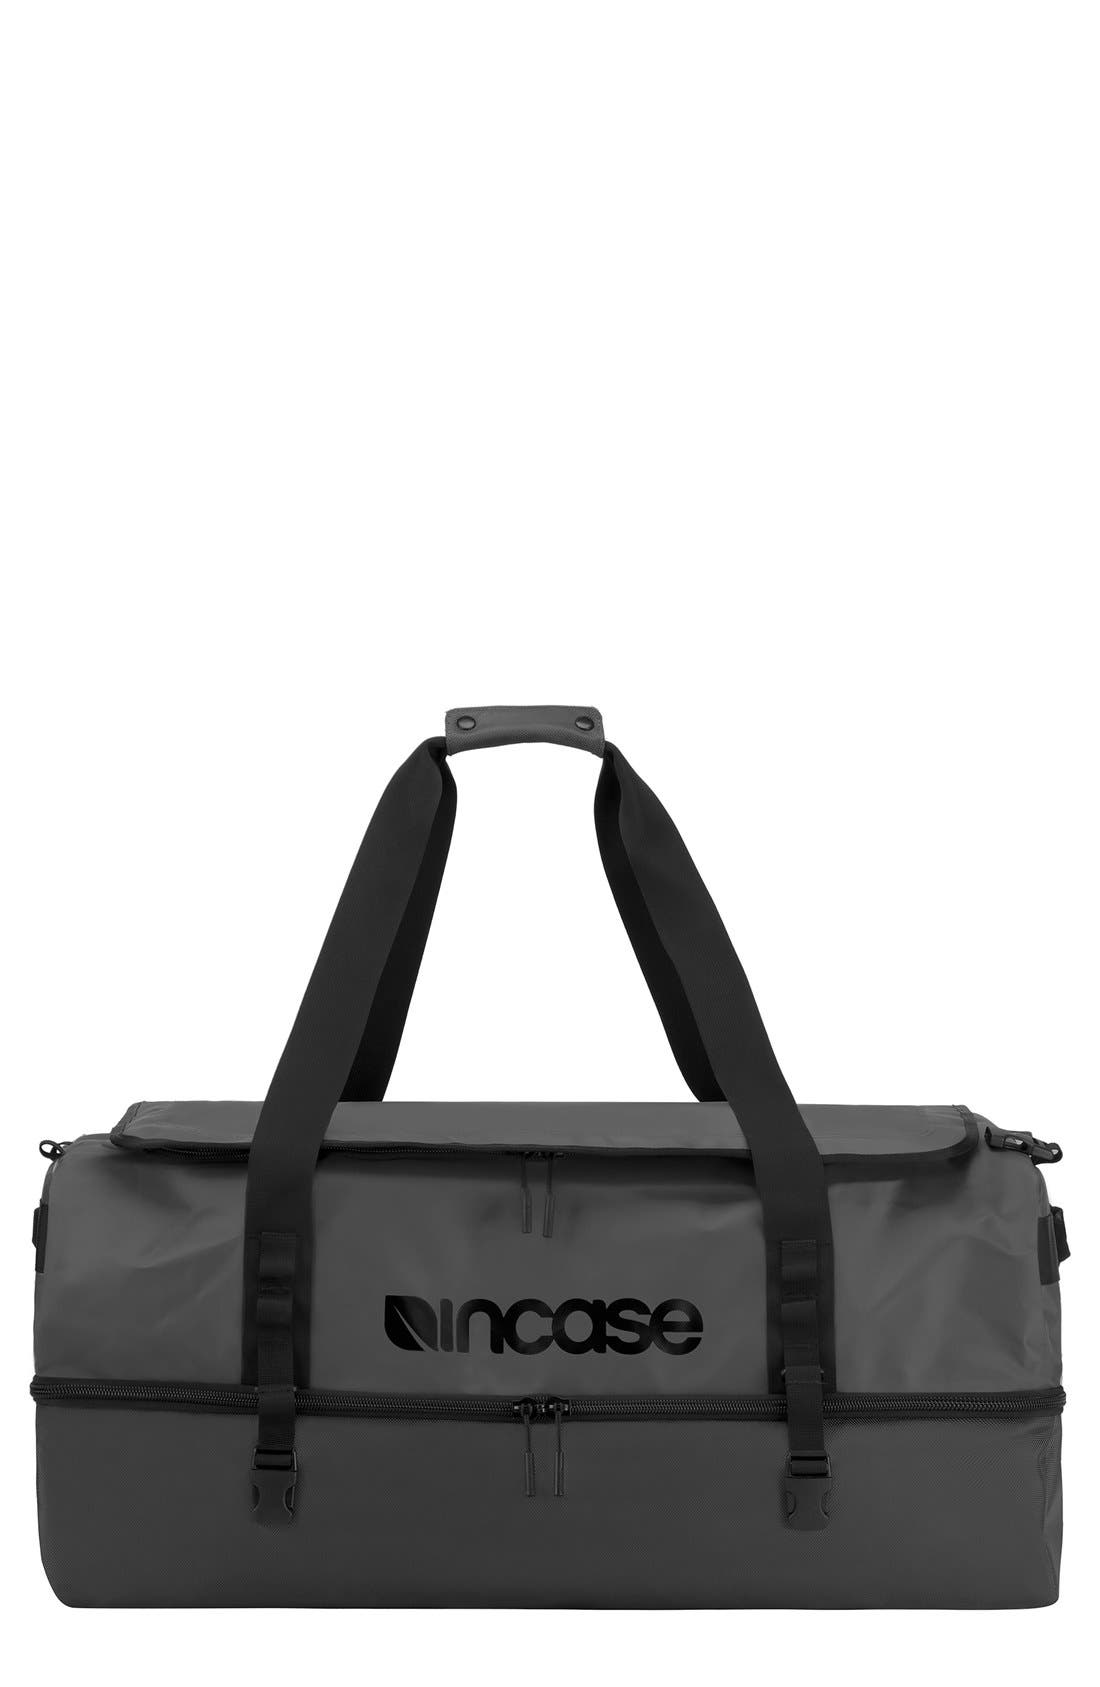 INCASE DESIGNS TRACTO Extra Large Split Convertible Duffel Bag